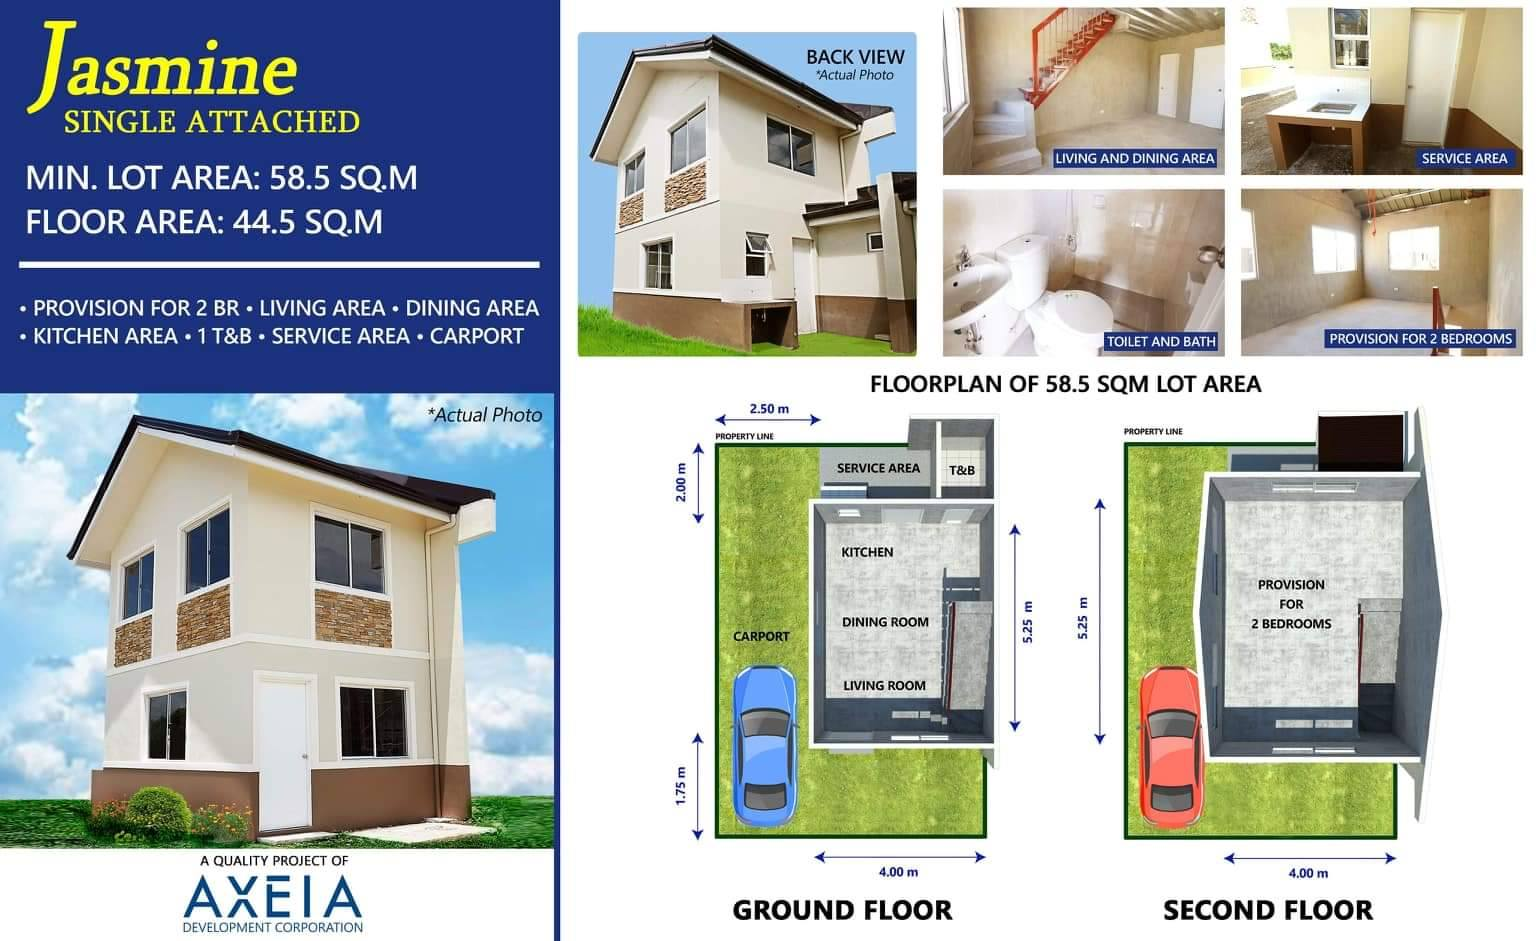 jasmine-single-attached-the-palm-residences-pag-ibig-rent-houses-for-sale-tanza-cavite